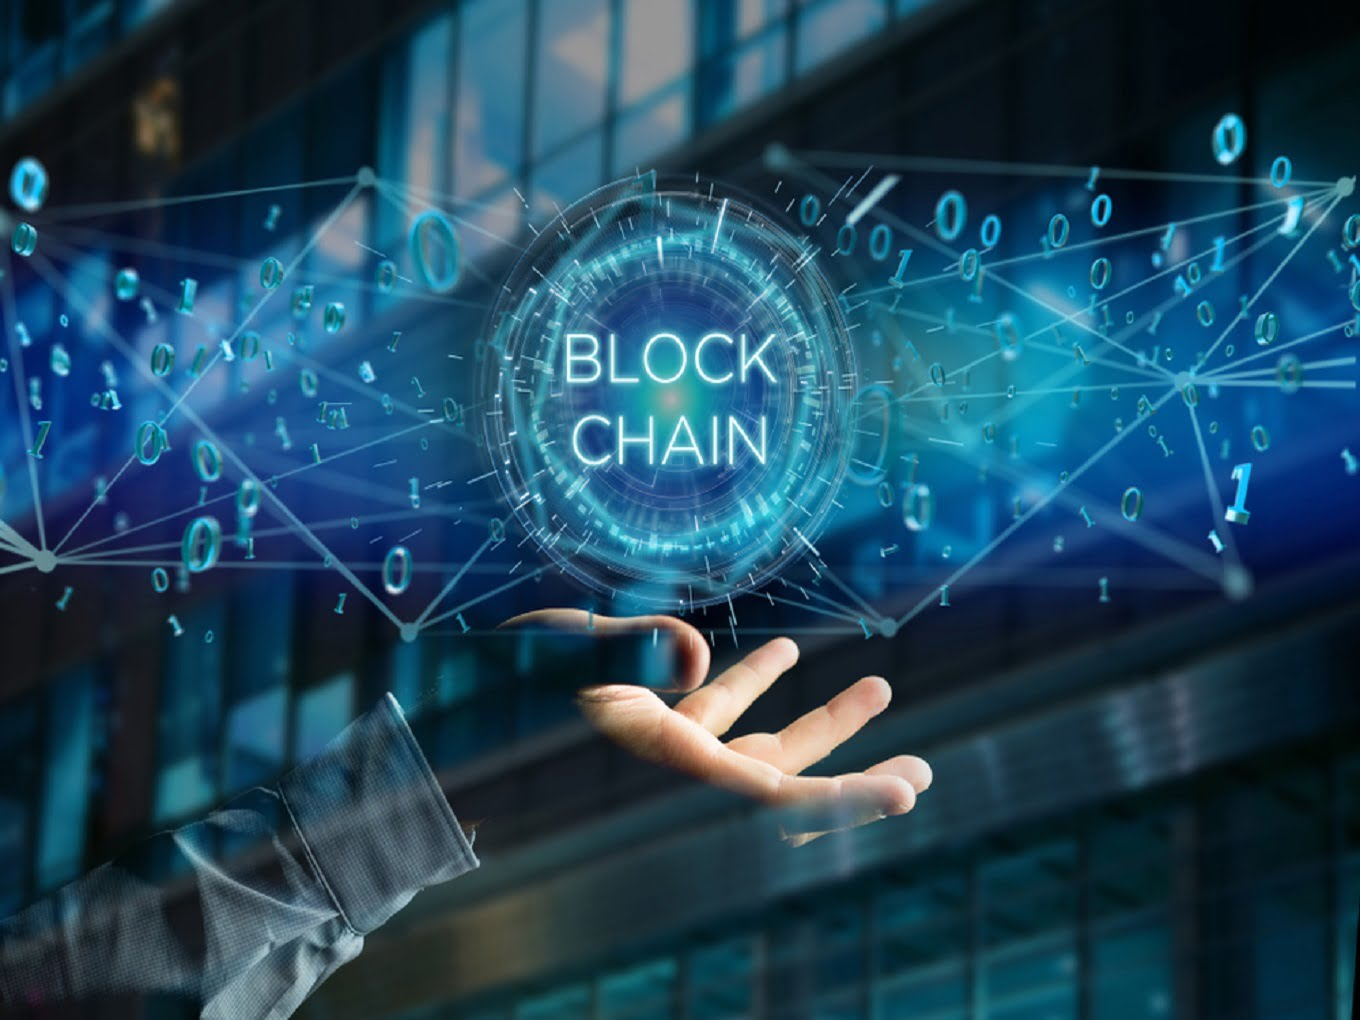 EU officials plan to invest in blockchain, data infrastructure, 5G, and quantum computing